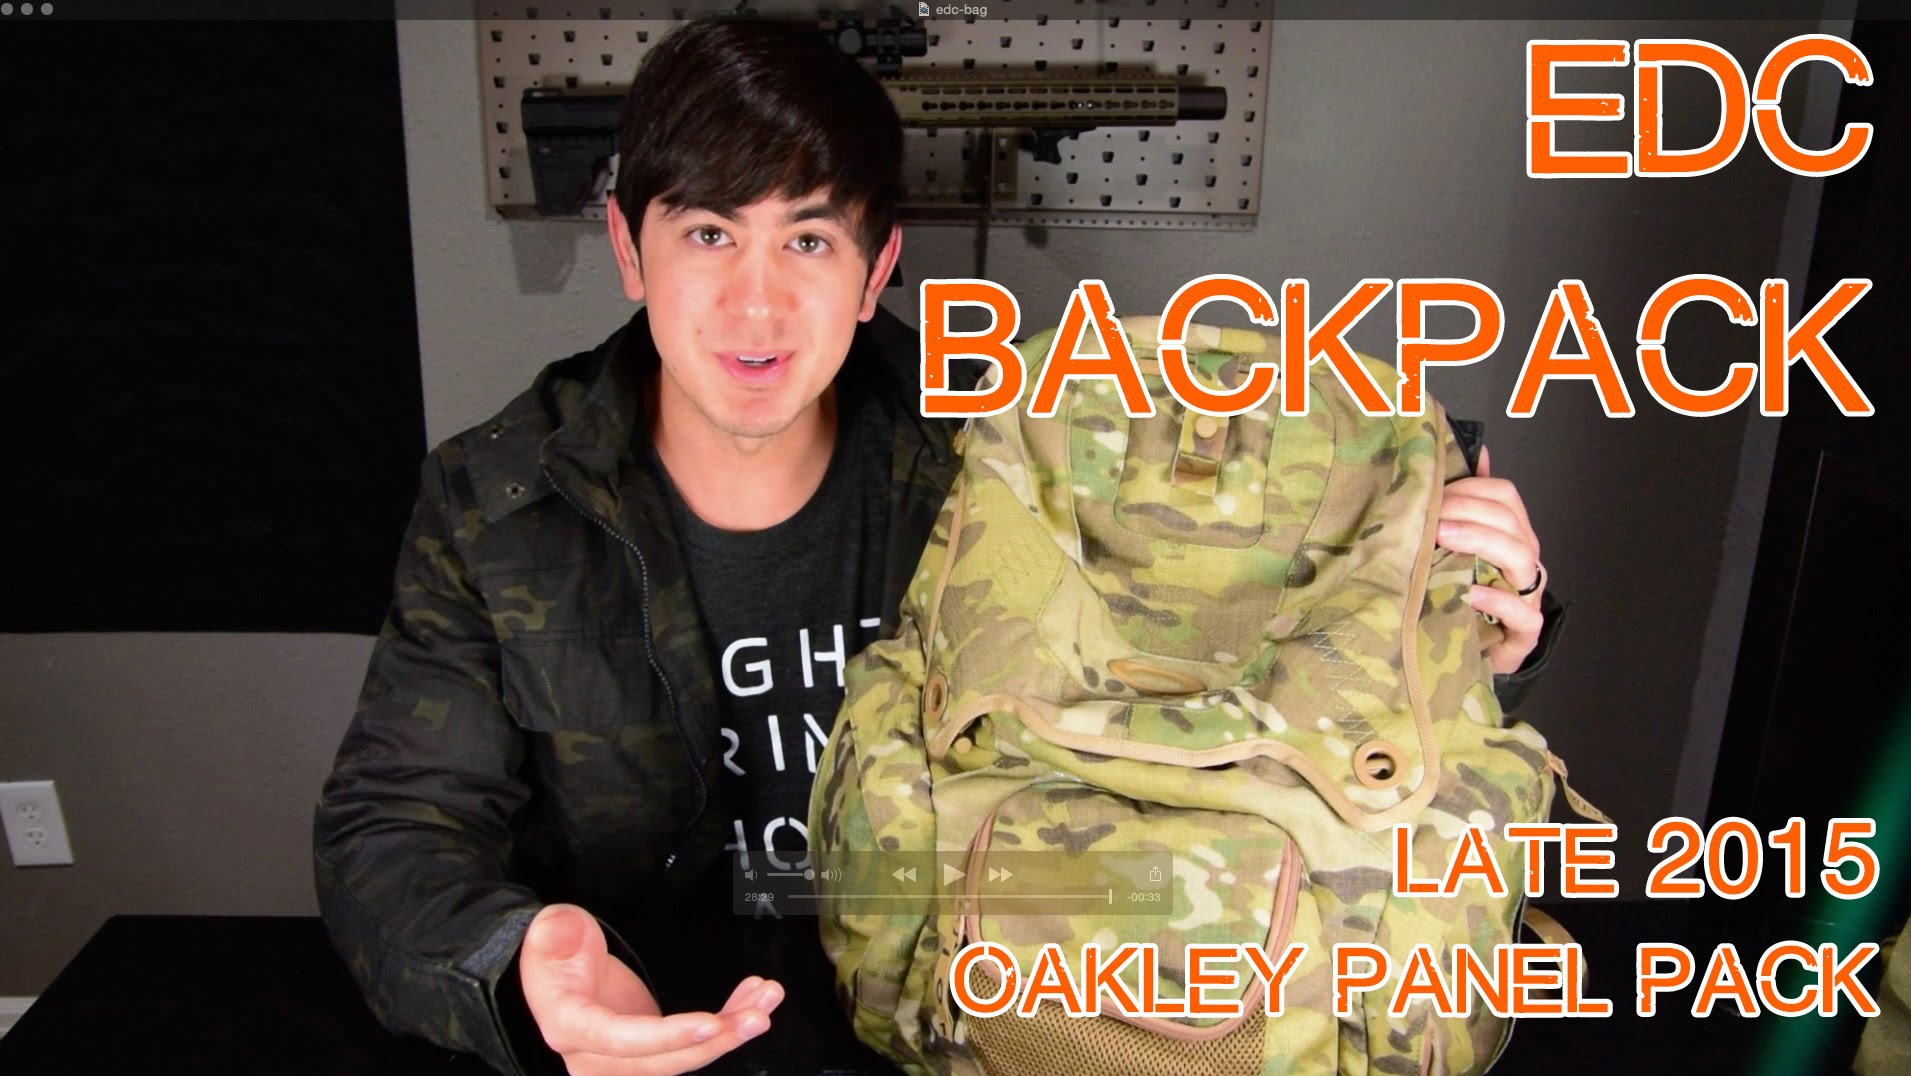 EDC Bag - Everyday Carry Backpack - Oakley Panel Pack (Late 2015)